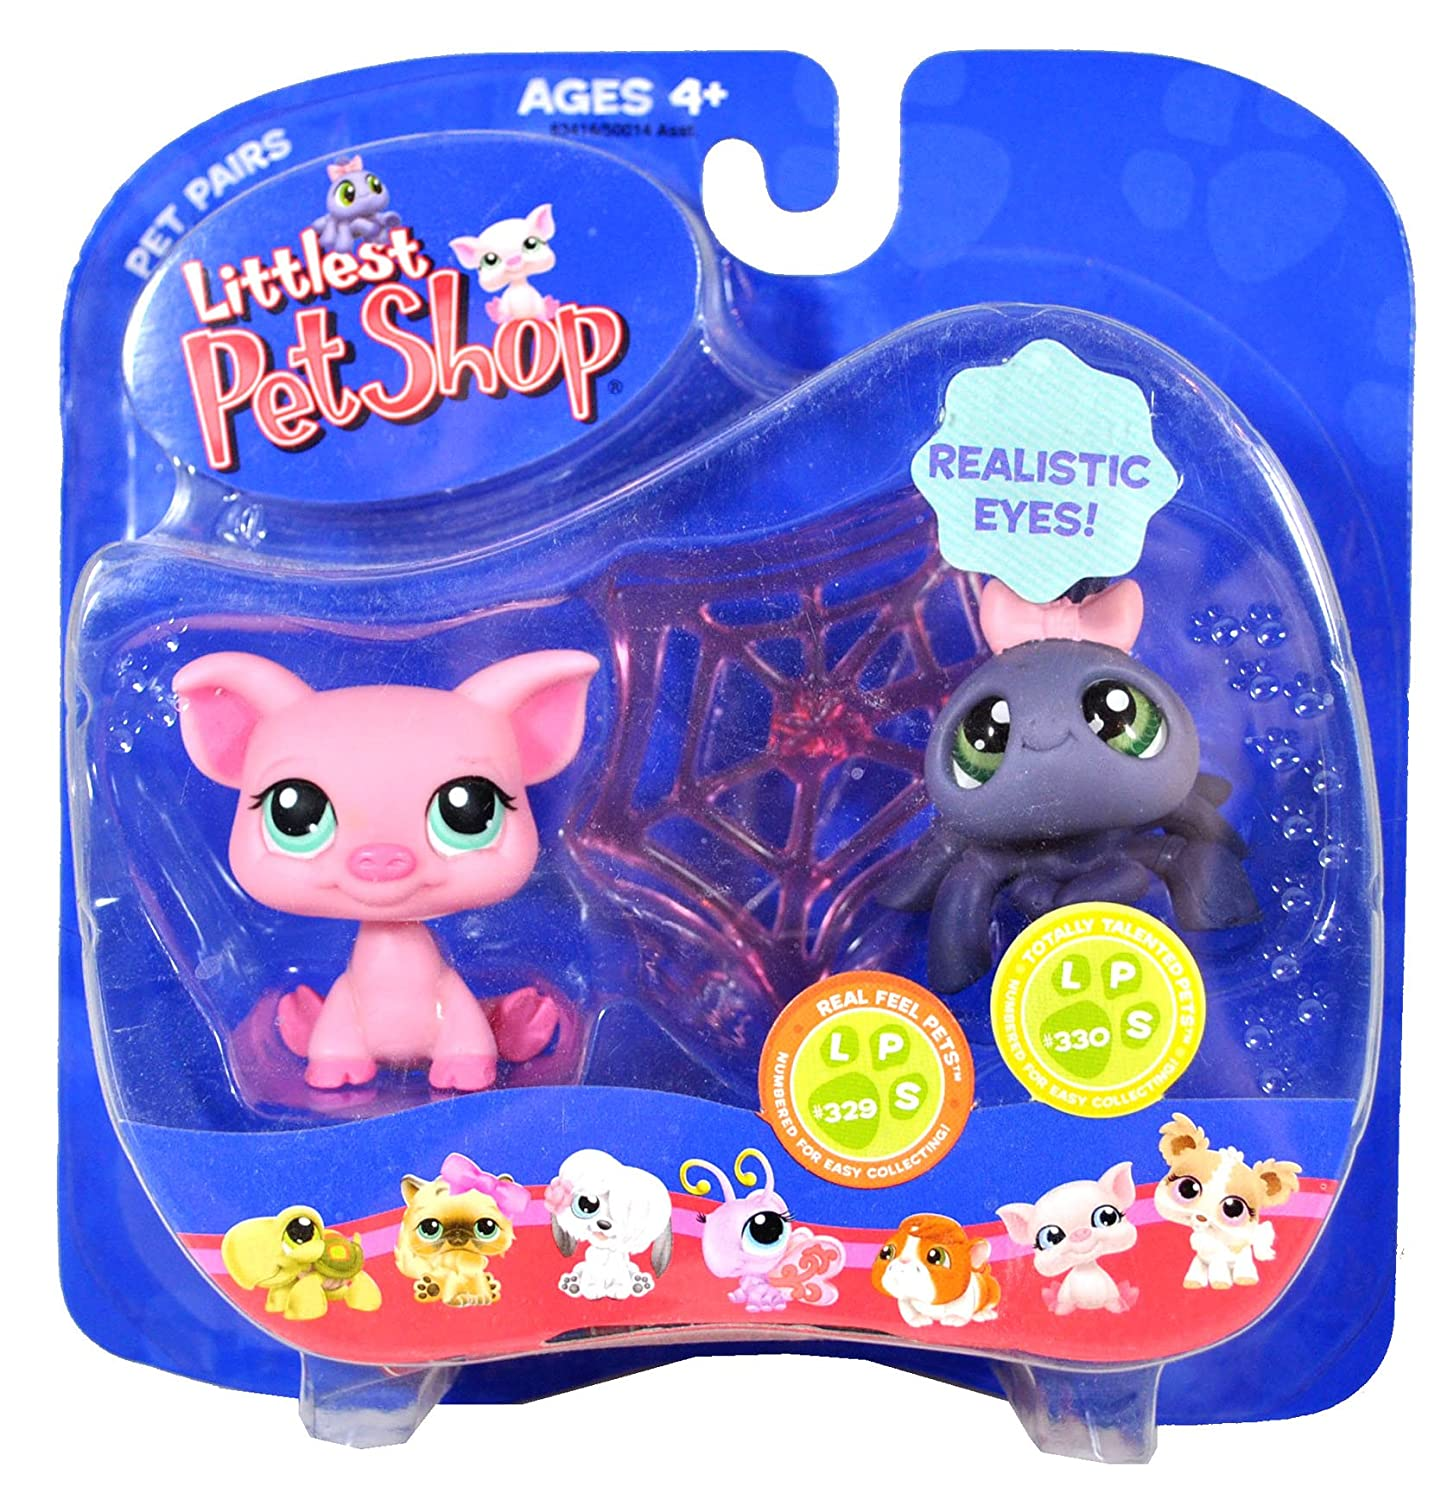 Hasbro Year 2007 Littlest B004X8YEJS Pet Set Shop Shop Pet Pairs Series Bobble Head Figure Set - Real Feel Pets #329 Pink Pig and Totally B004X8YEJS, Suitable:ae3d0397 --- arvoreazul.com.br